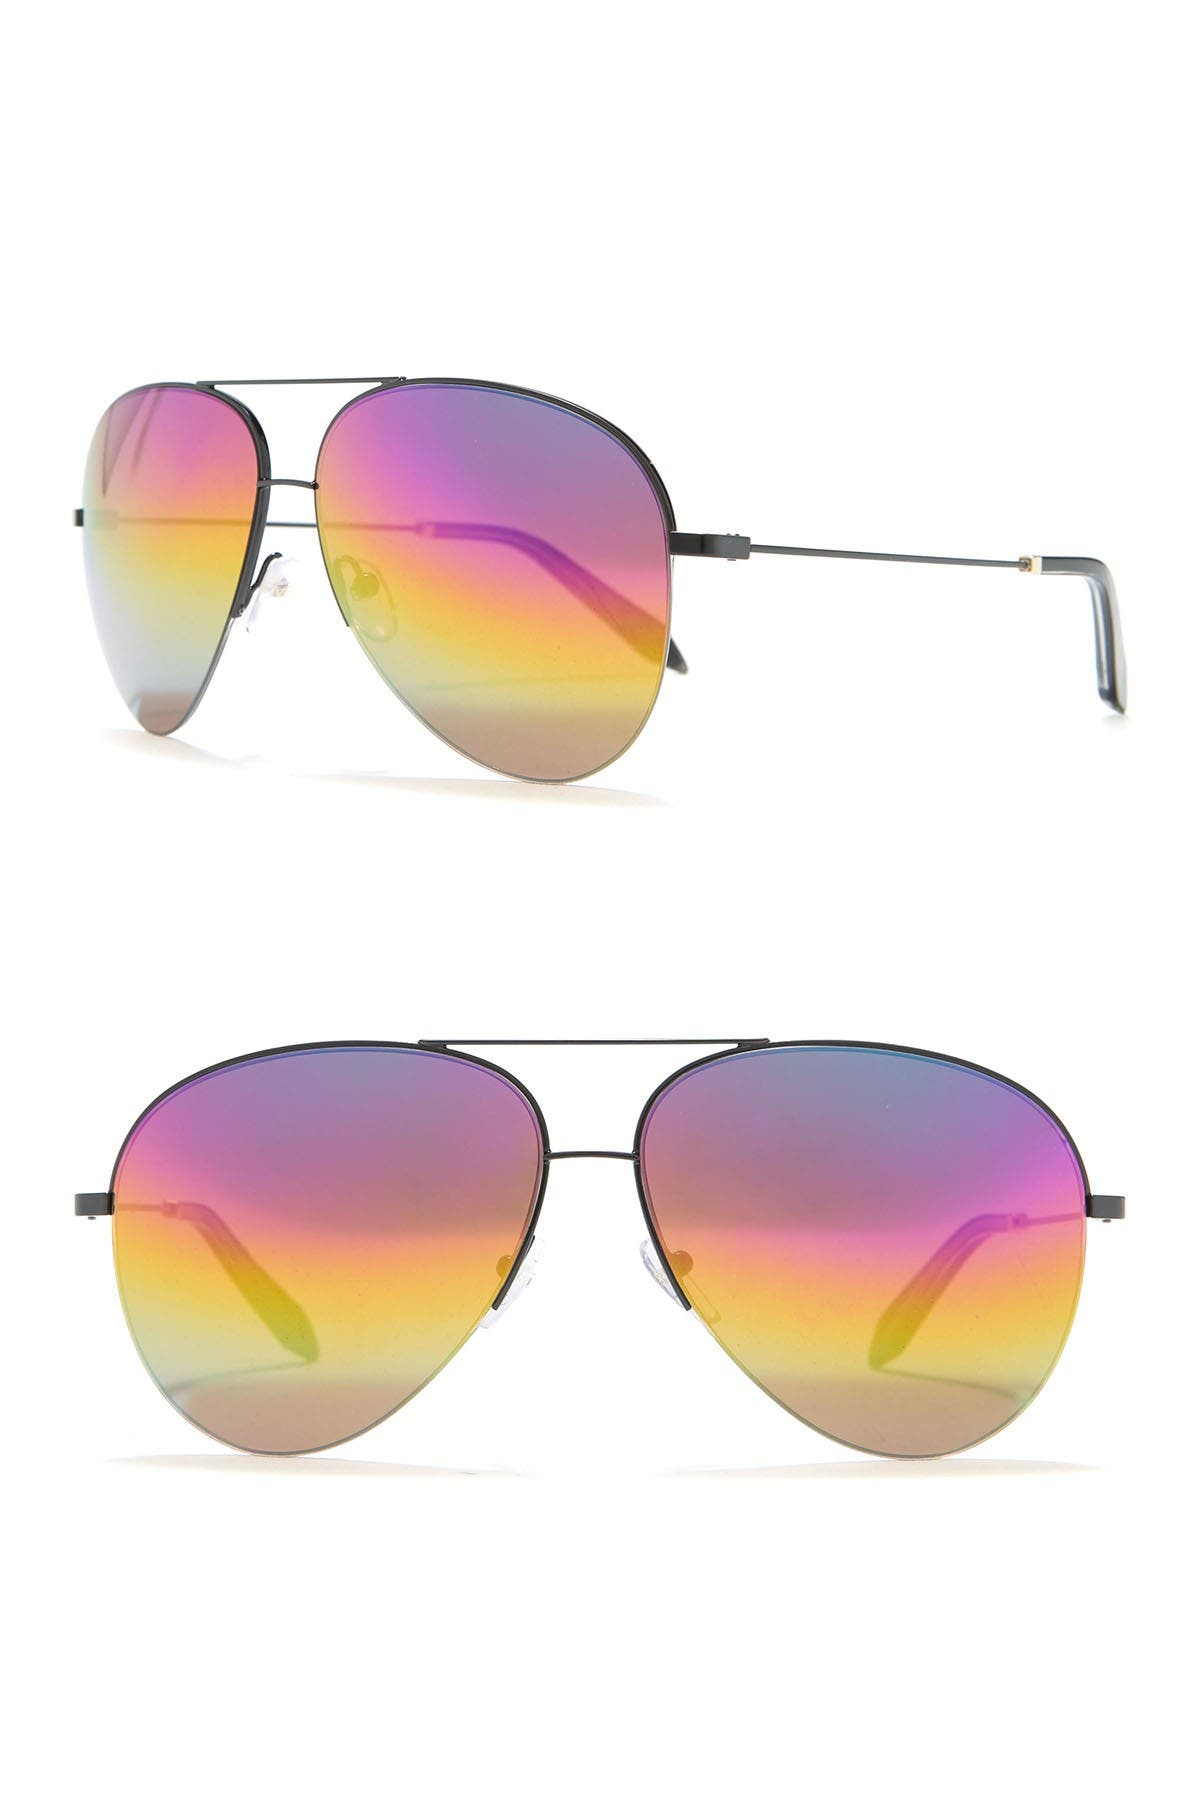 Image of Victoria Beckham 62mm Aviator Sunglasses